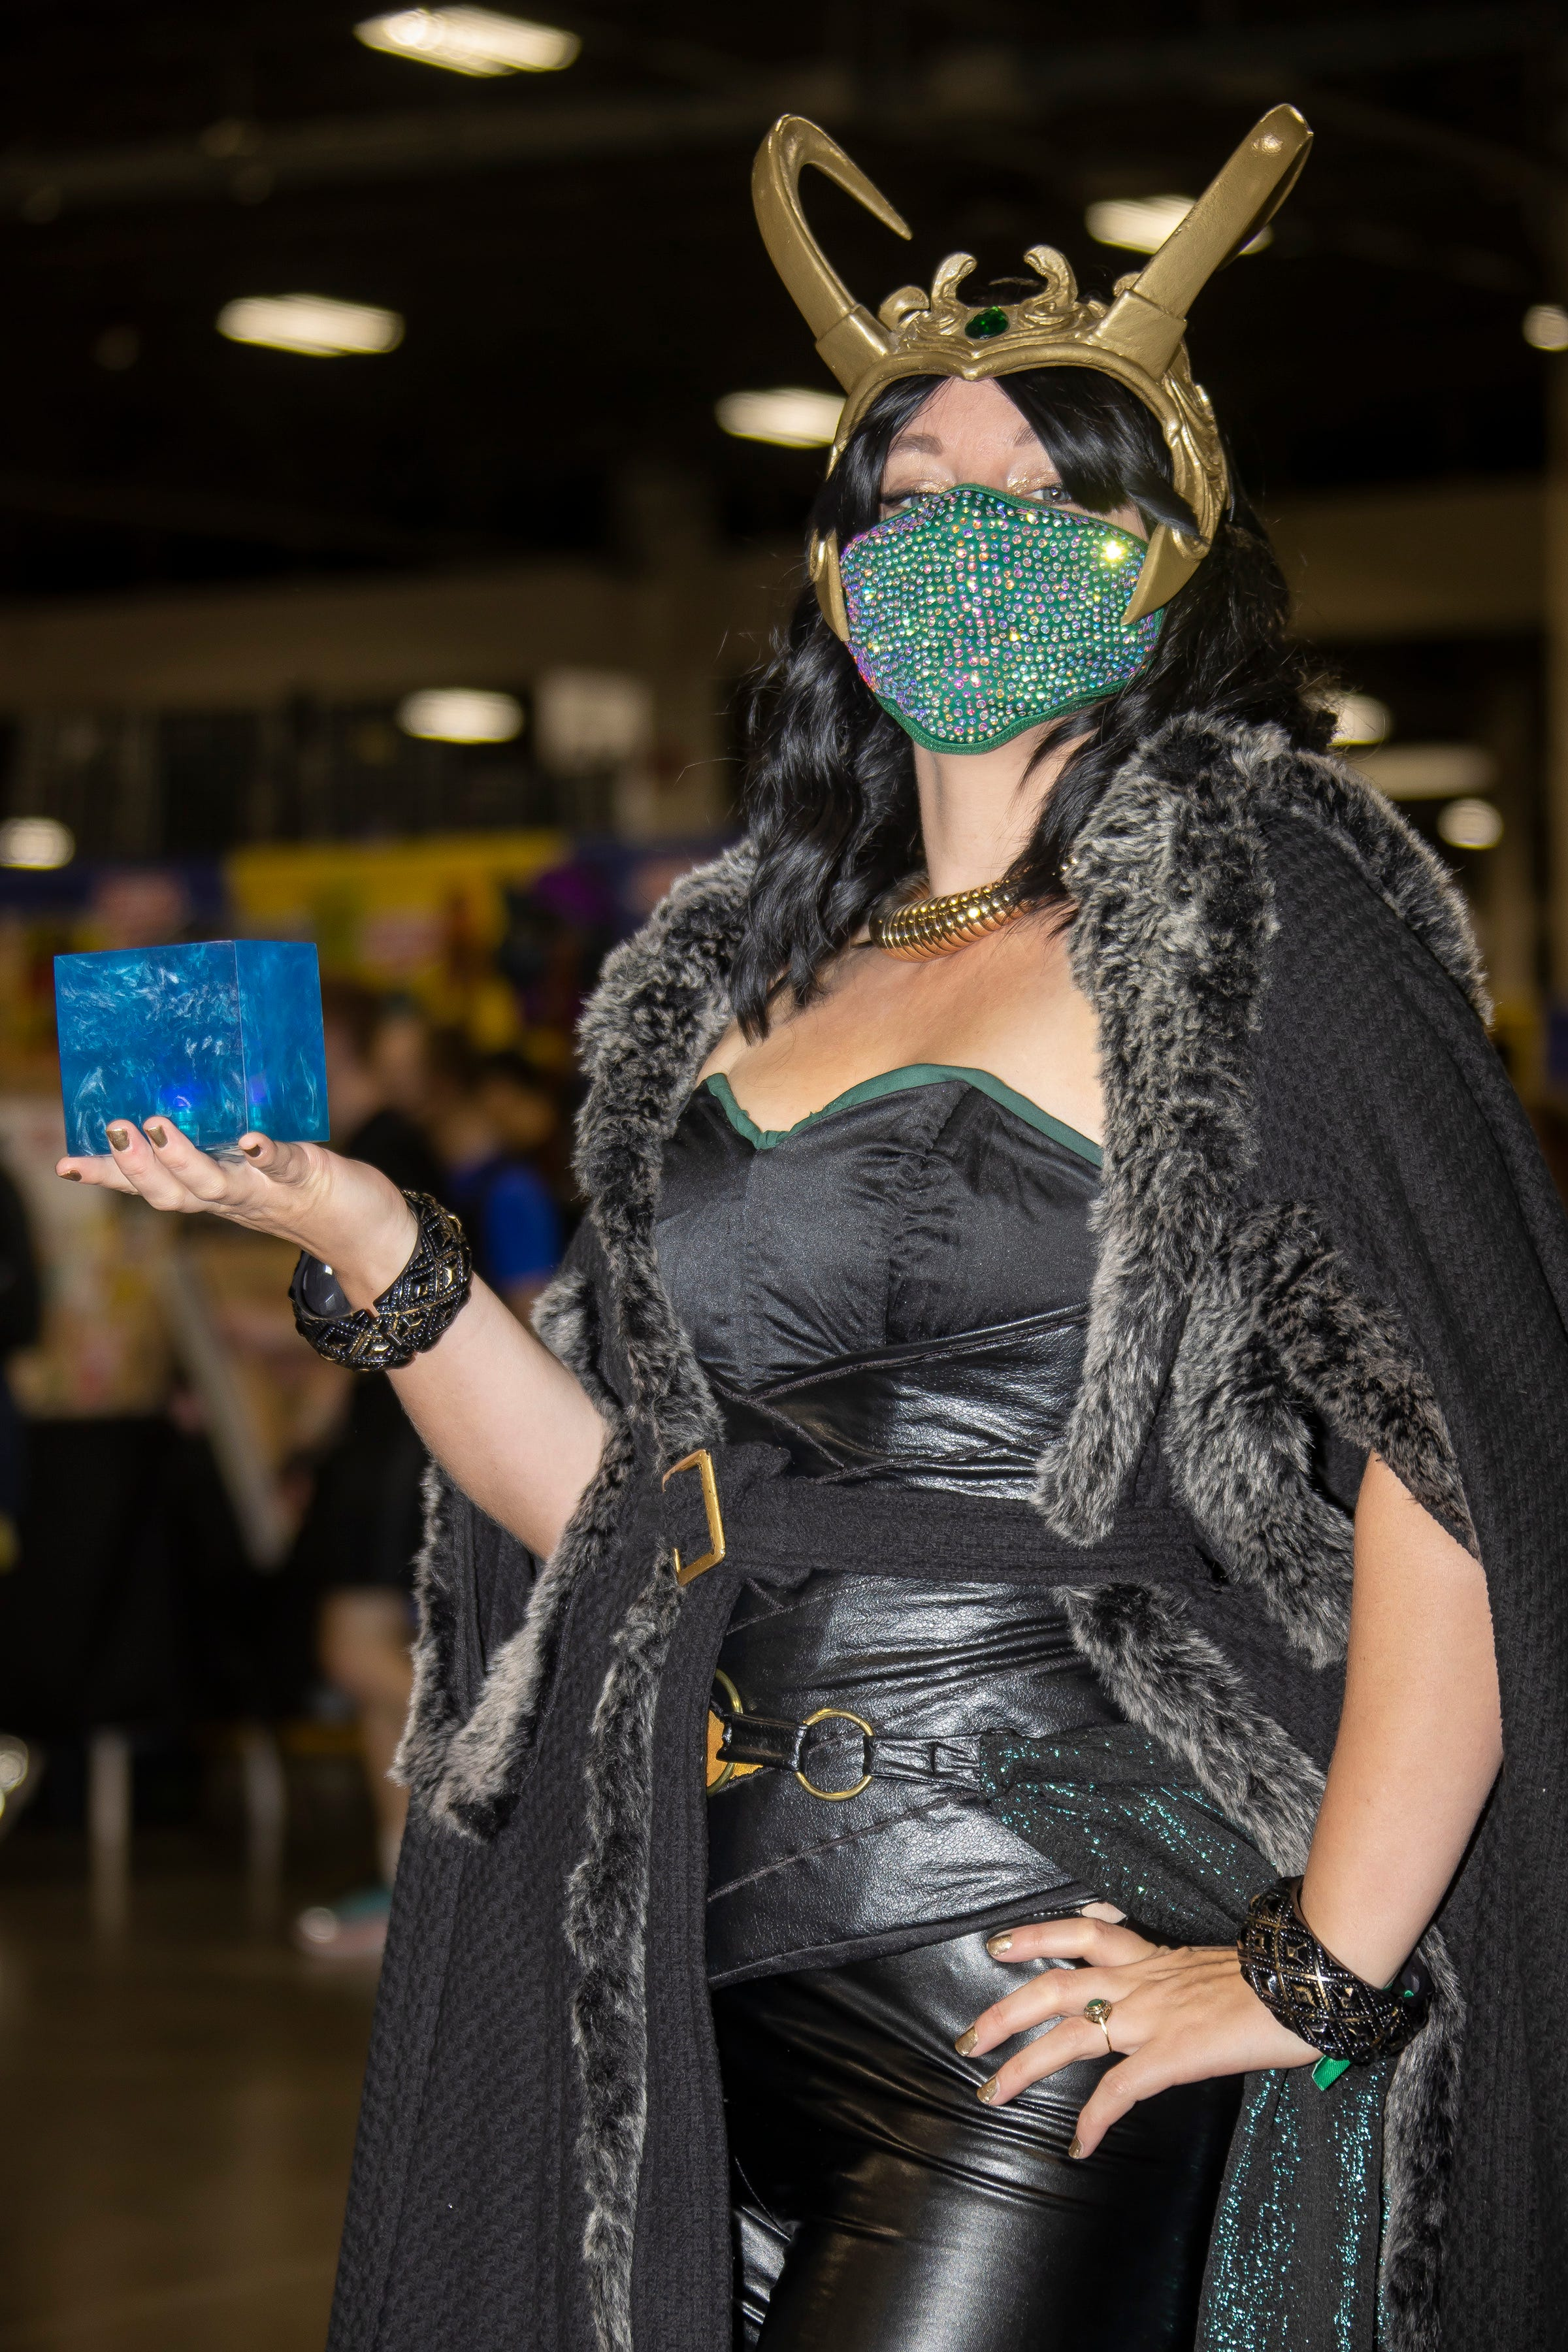 Geeking out: Motor City Comic Con returns with celebrities, costumed fans